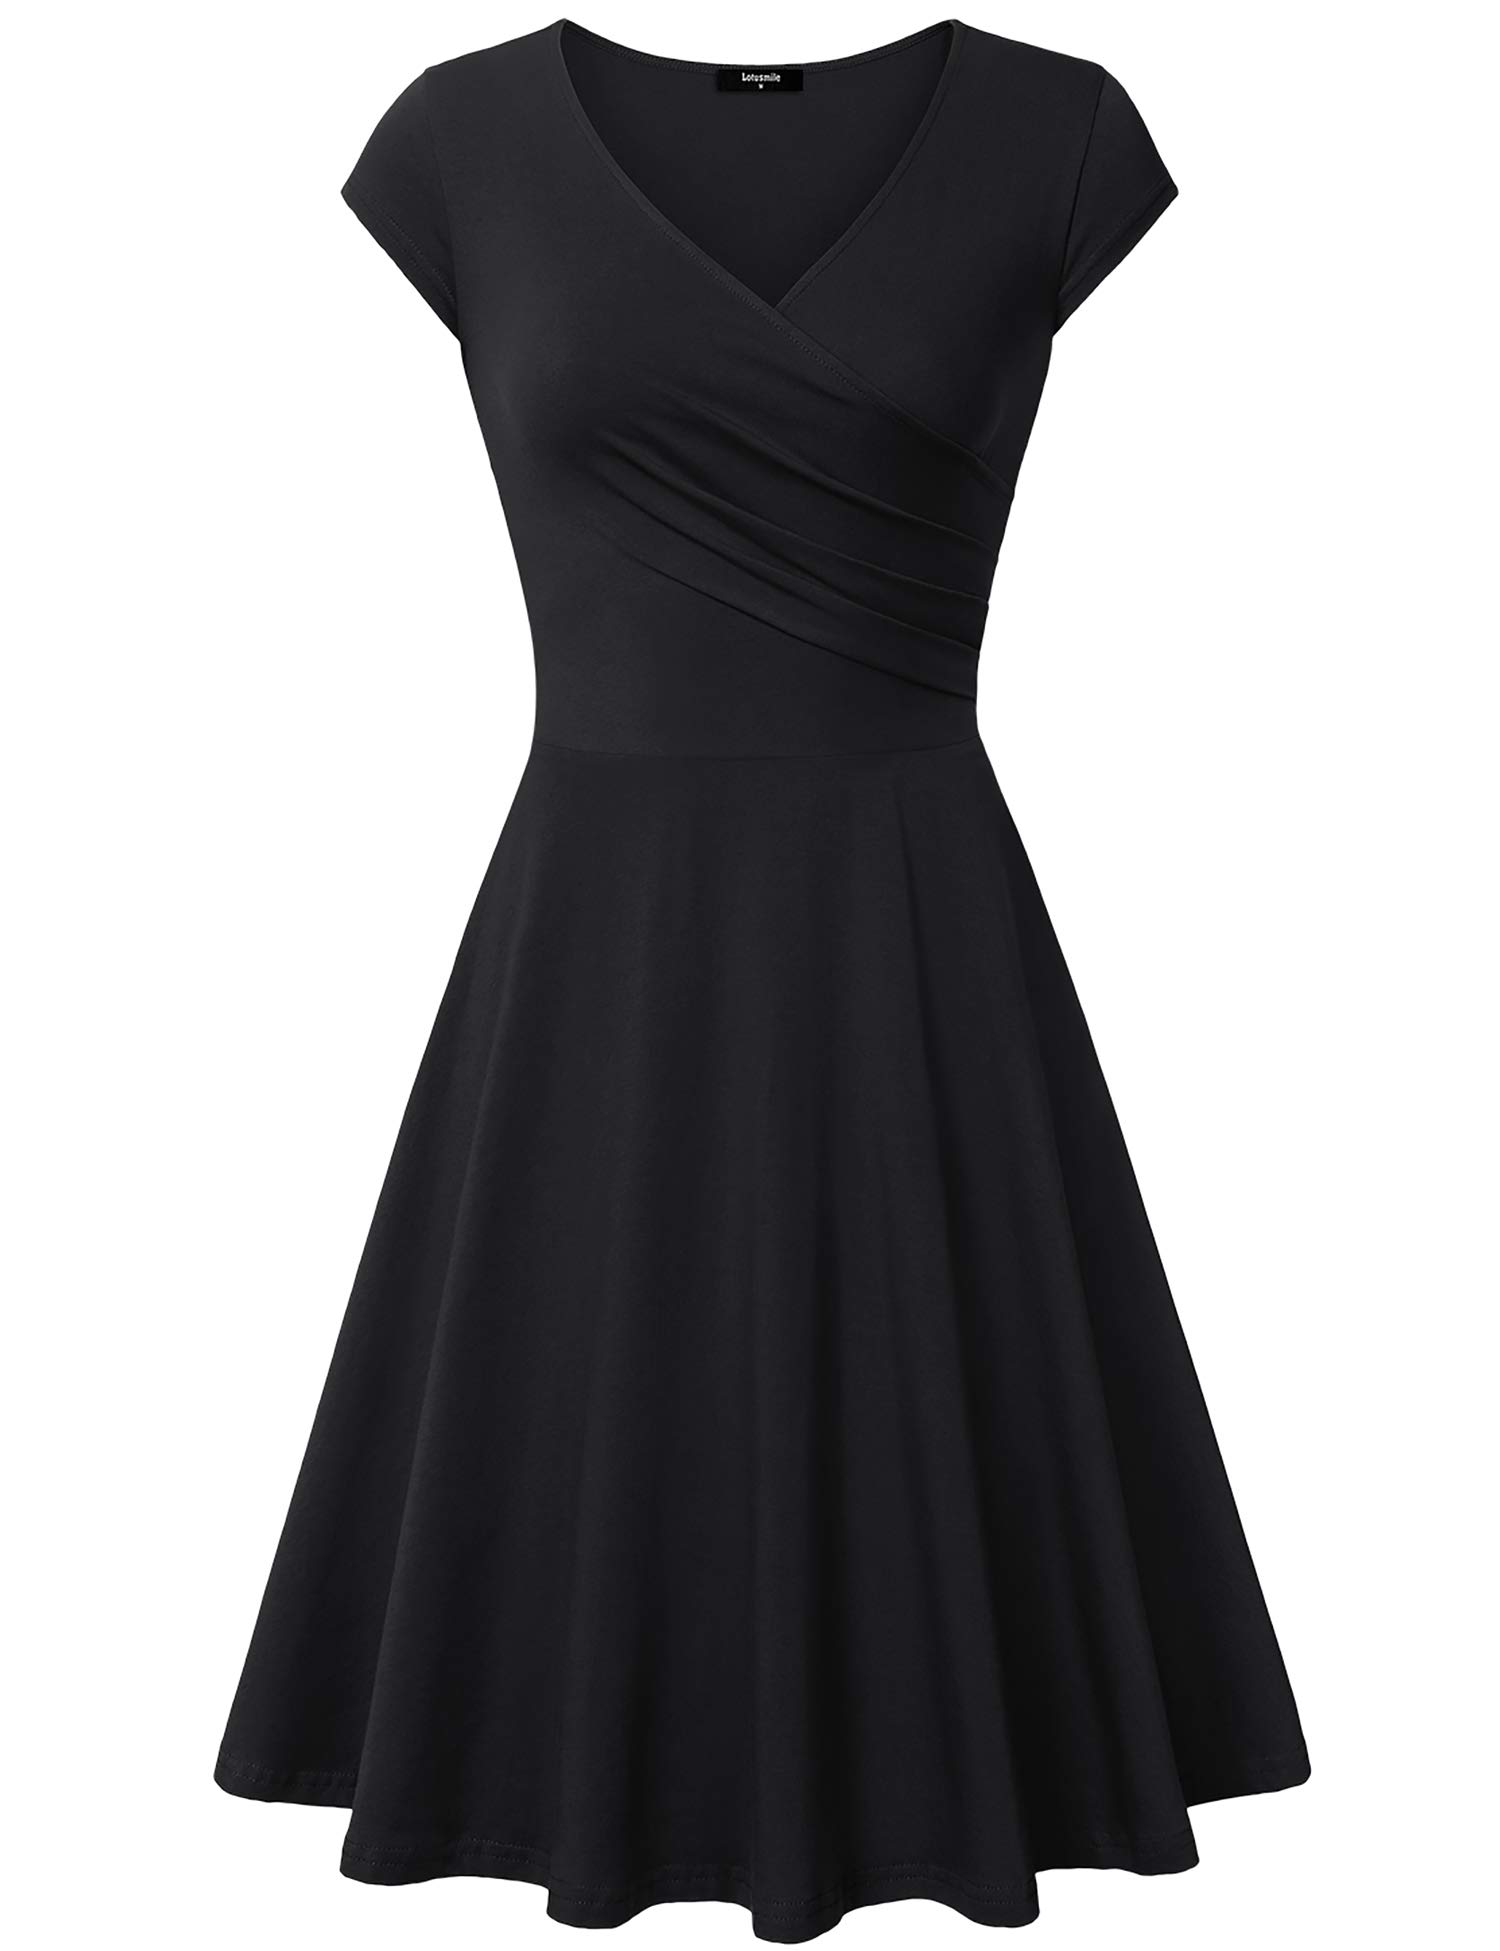 Available at Amazon: Lotusmile Casual DressWomen's Elegant Dress A Line Cap Sleeve V Neck